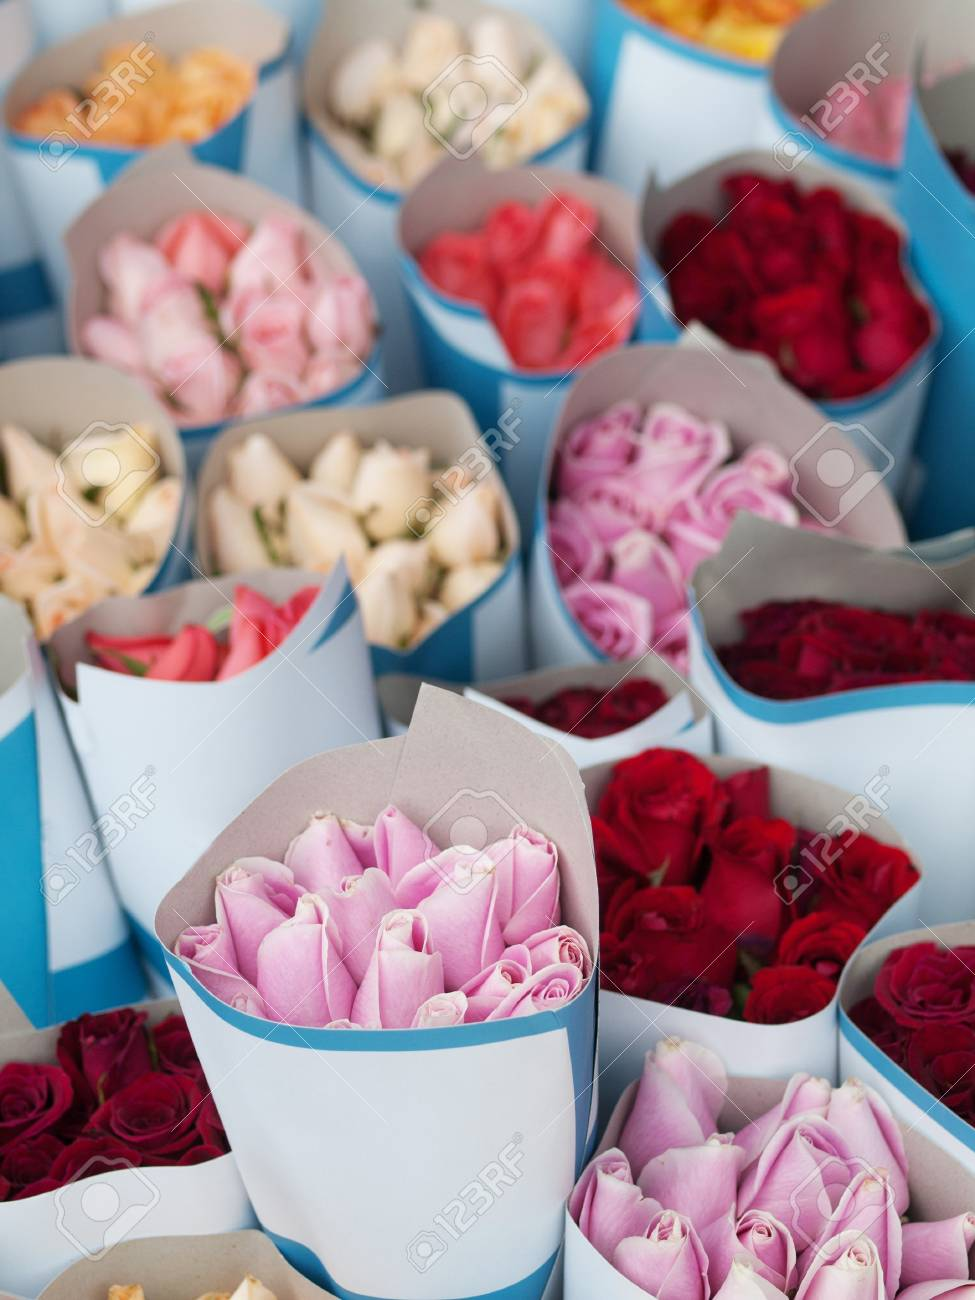 Bunch of colorful  roses on display in a market Stock Photo - 7556811